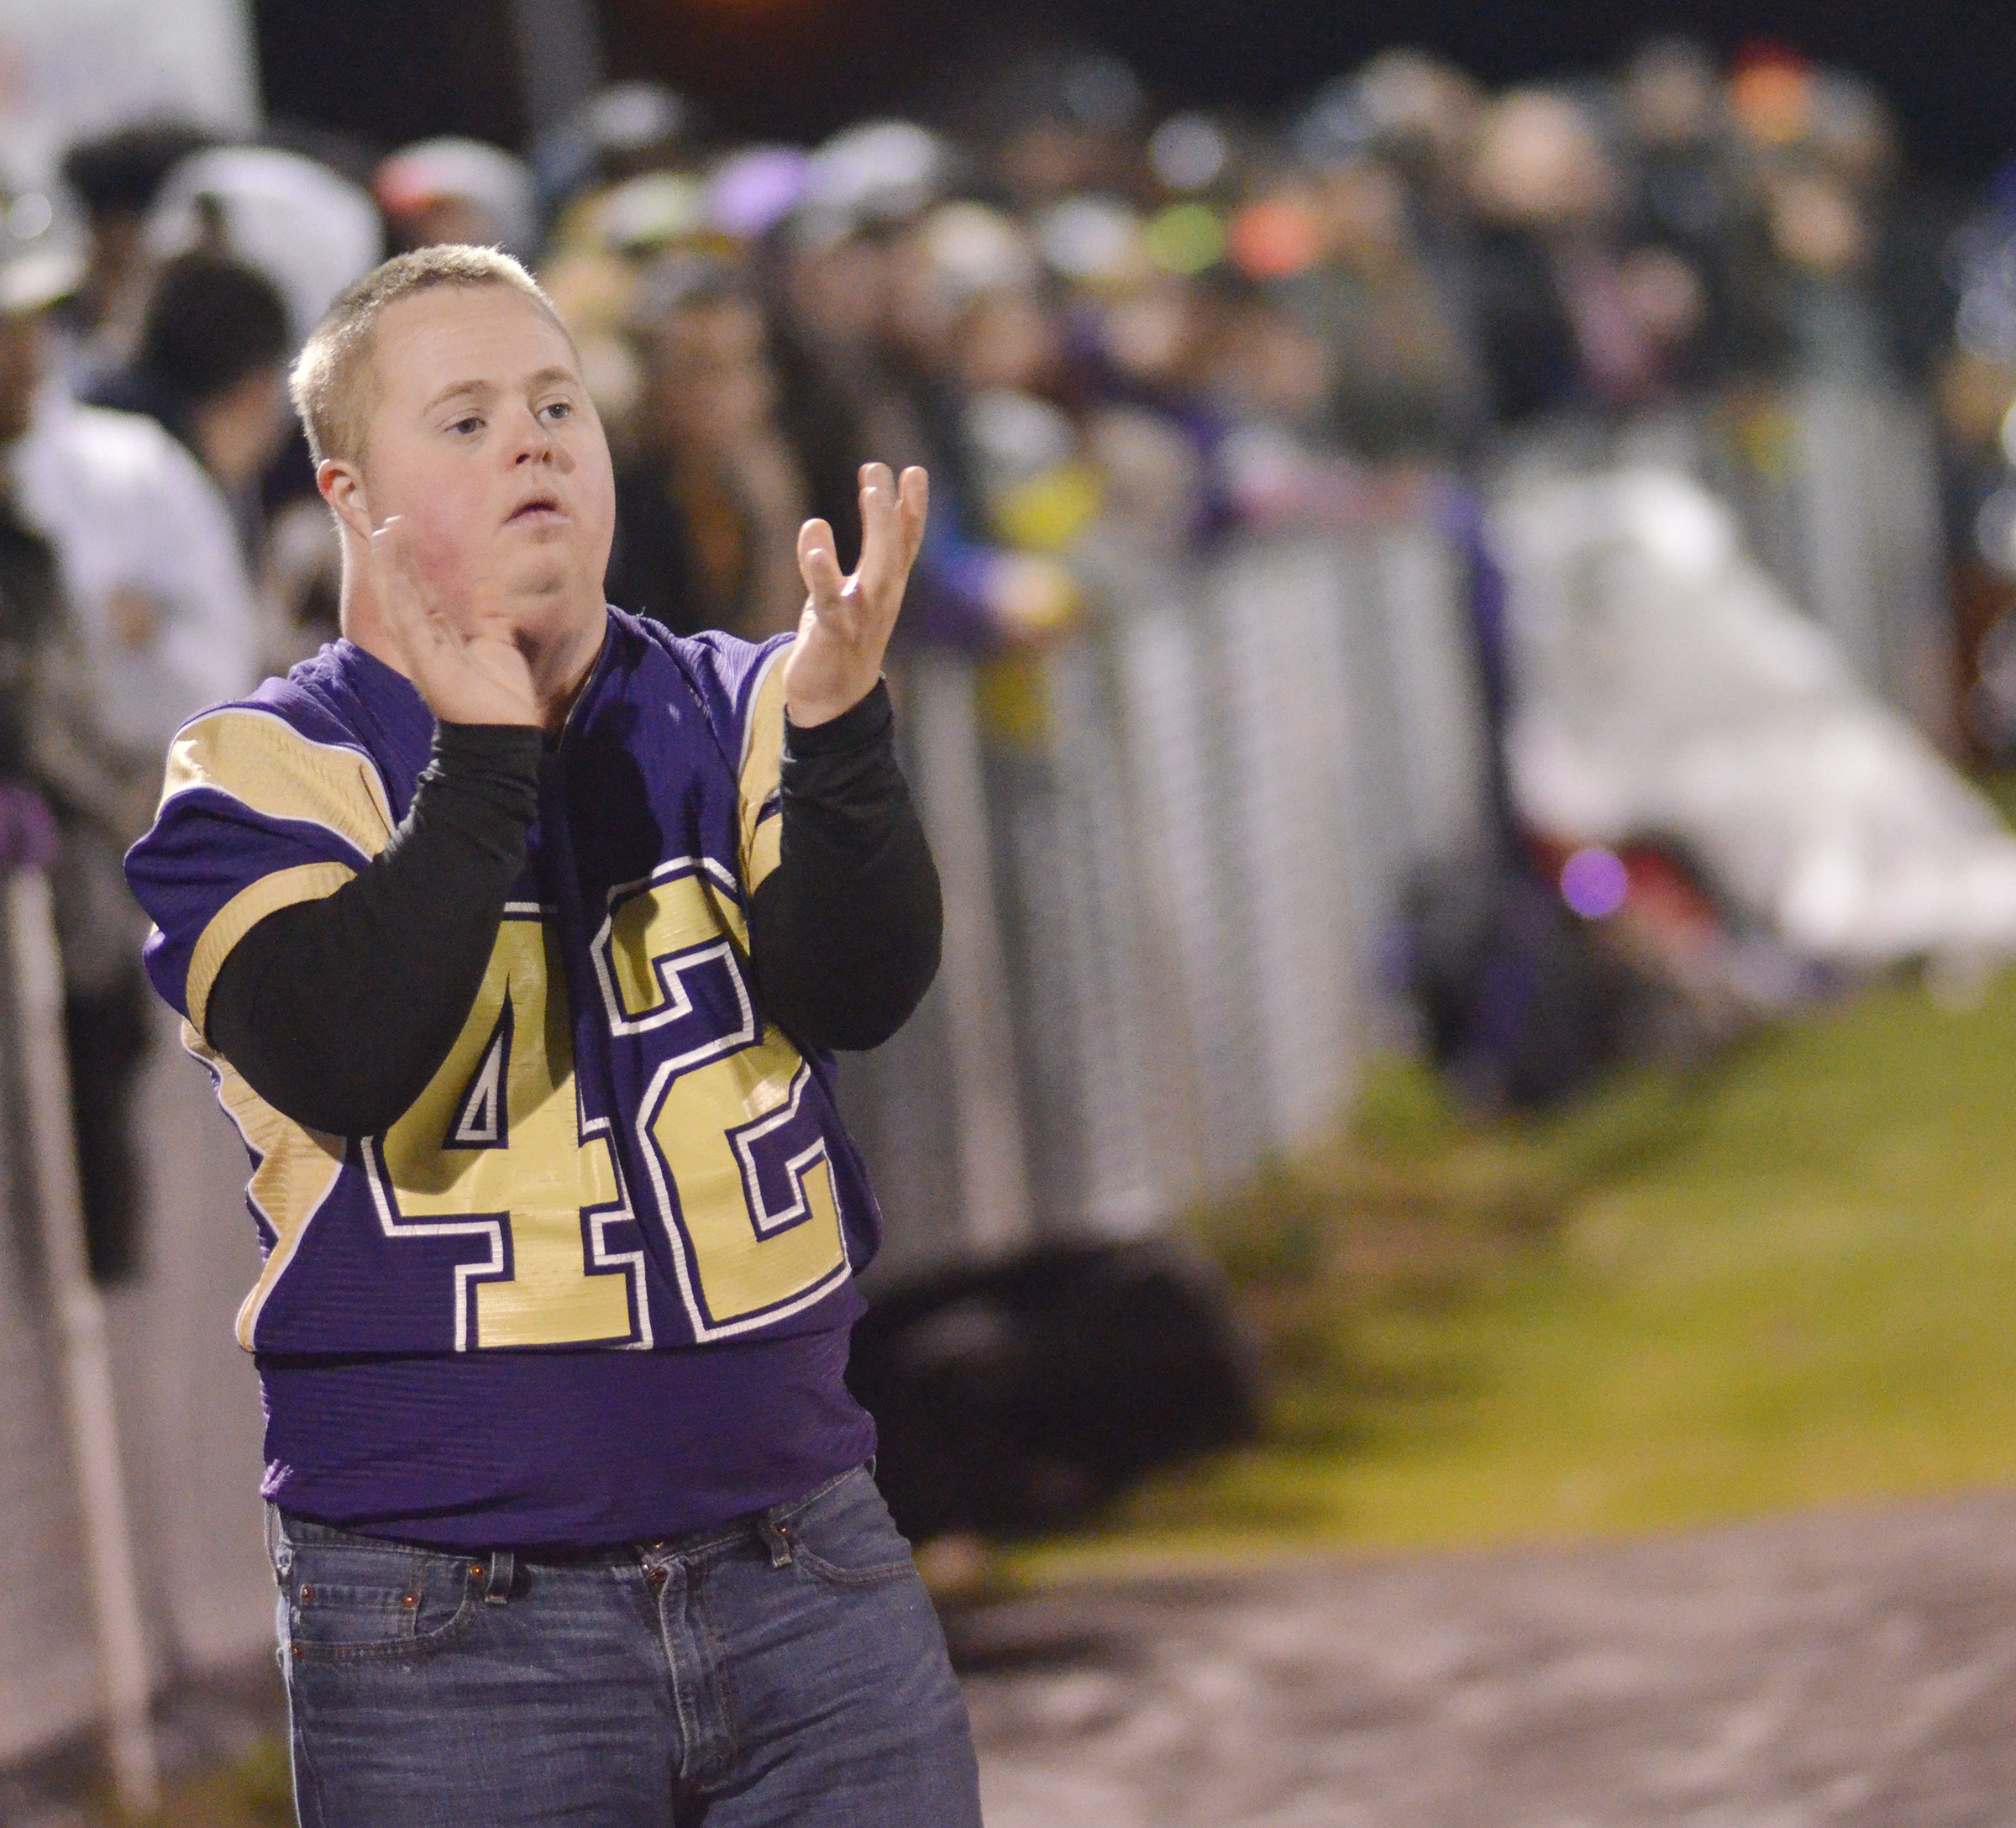 Eagle fan Brennan Wheatley cheers for his team.